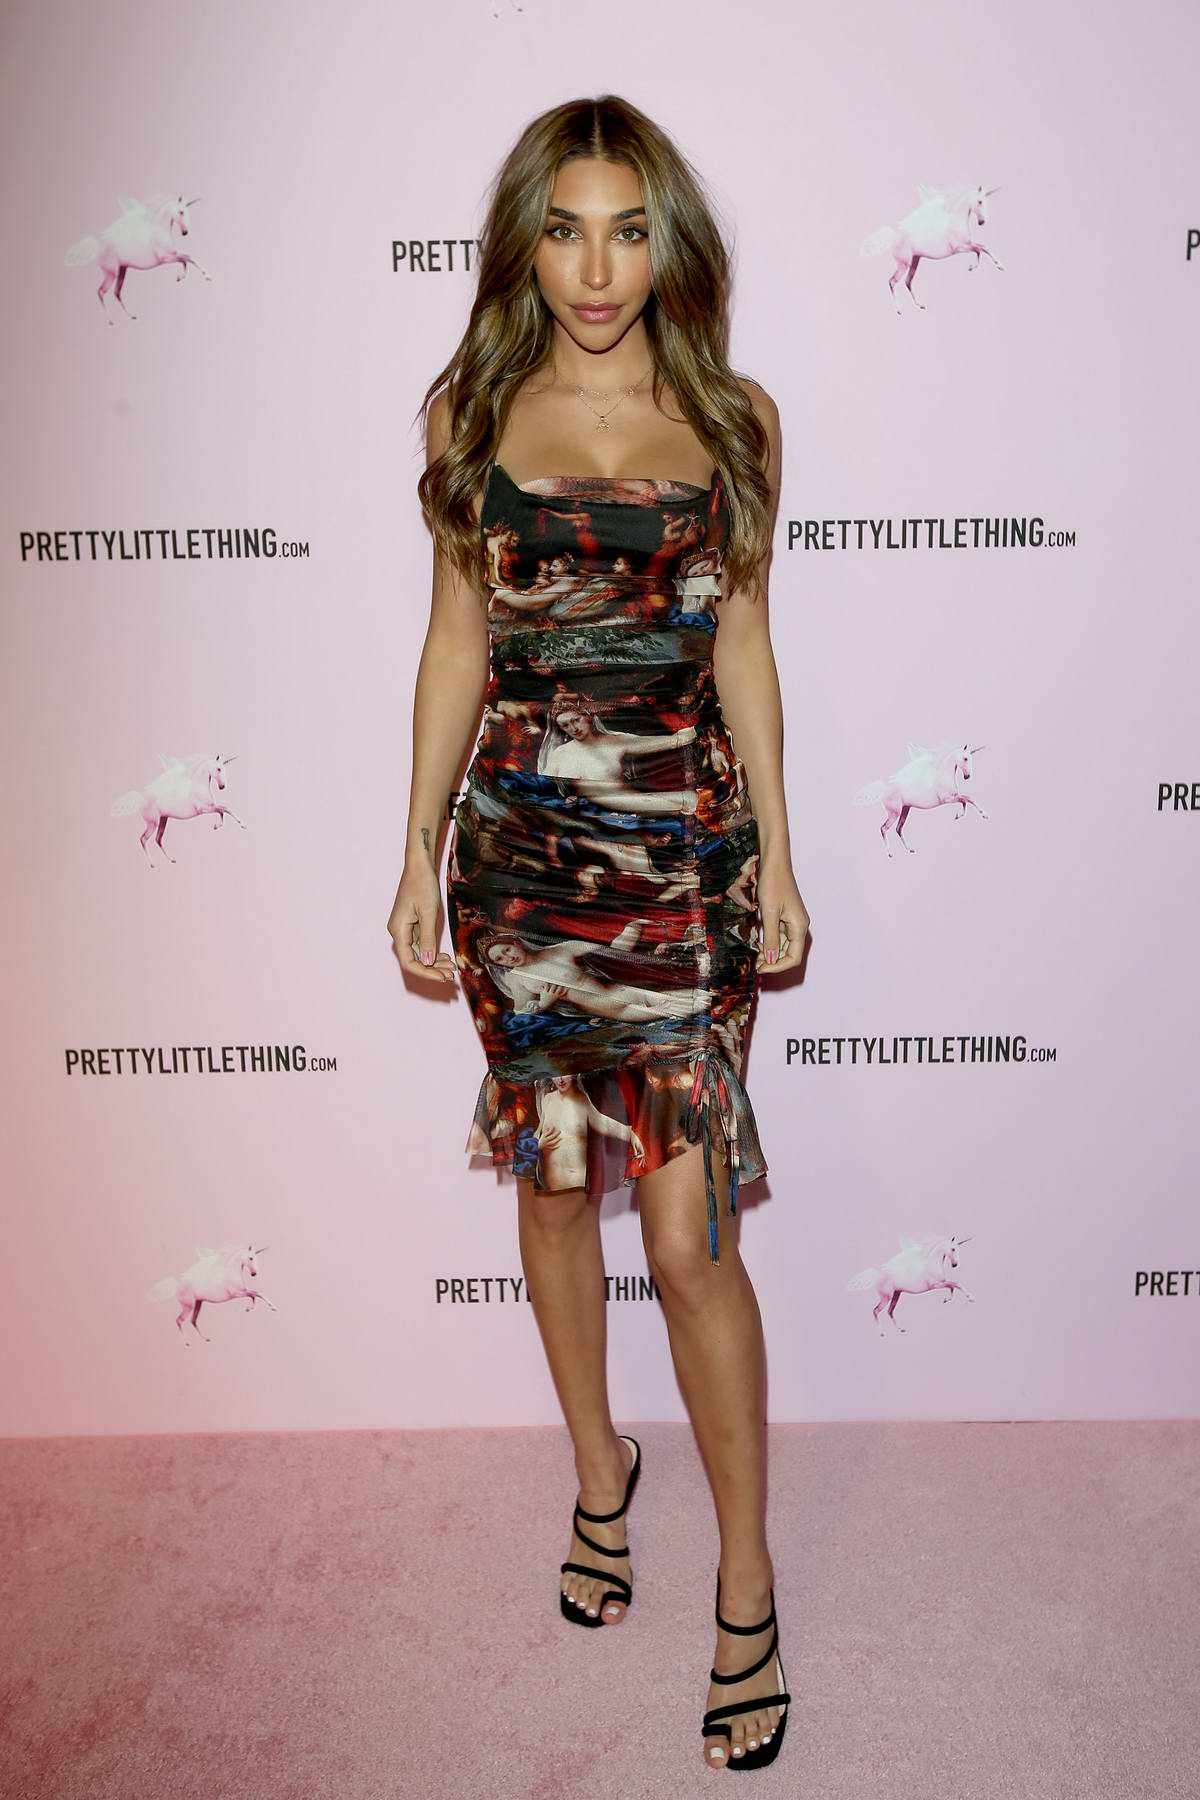 Chantel Jeffries attends PrettyLittleThing x Chantel Jeffries launch event in Los Angeles